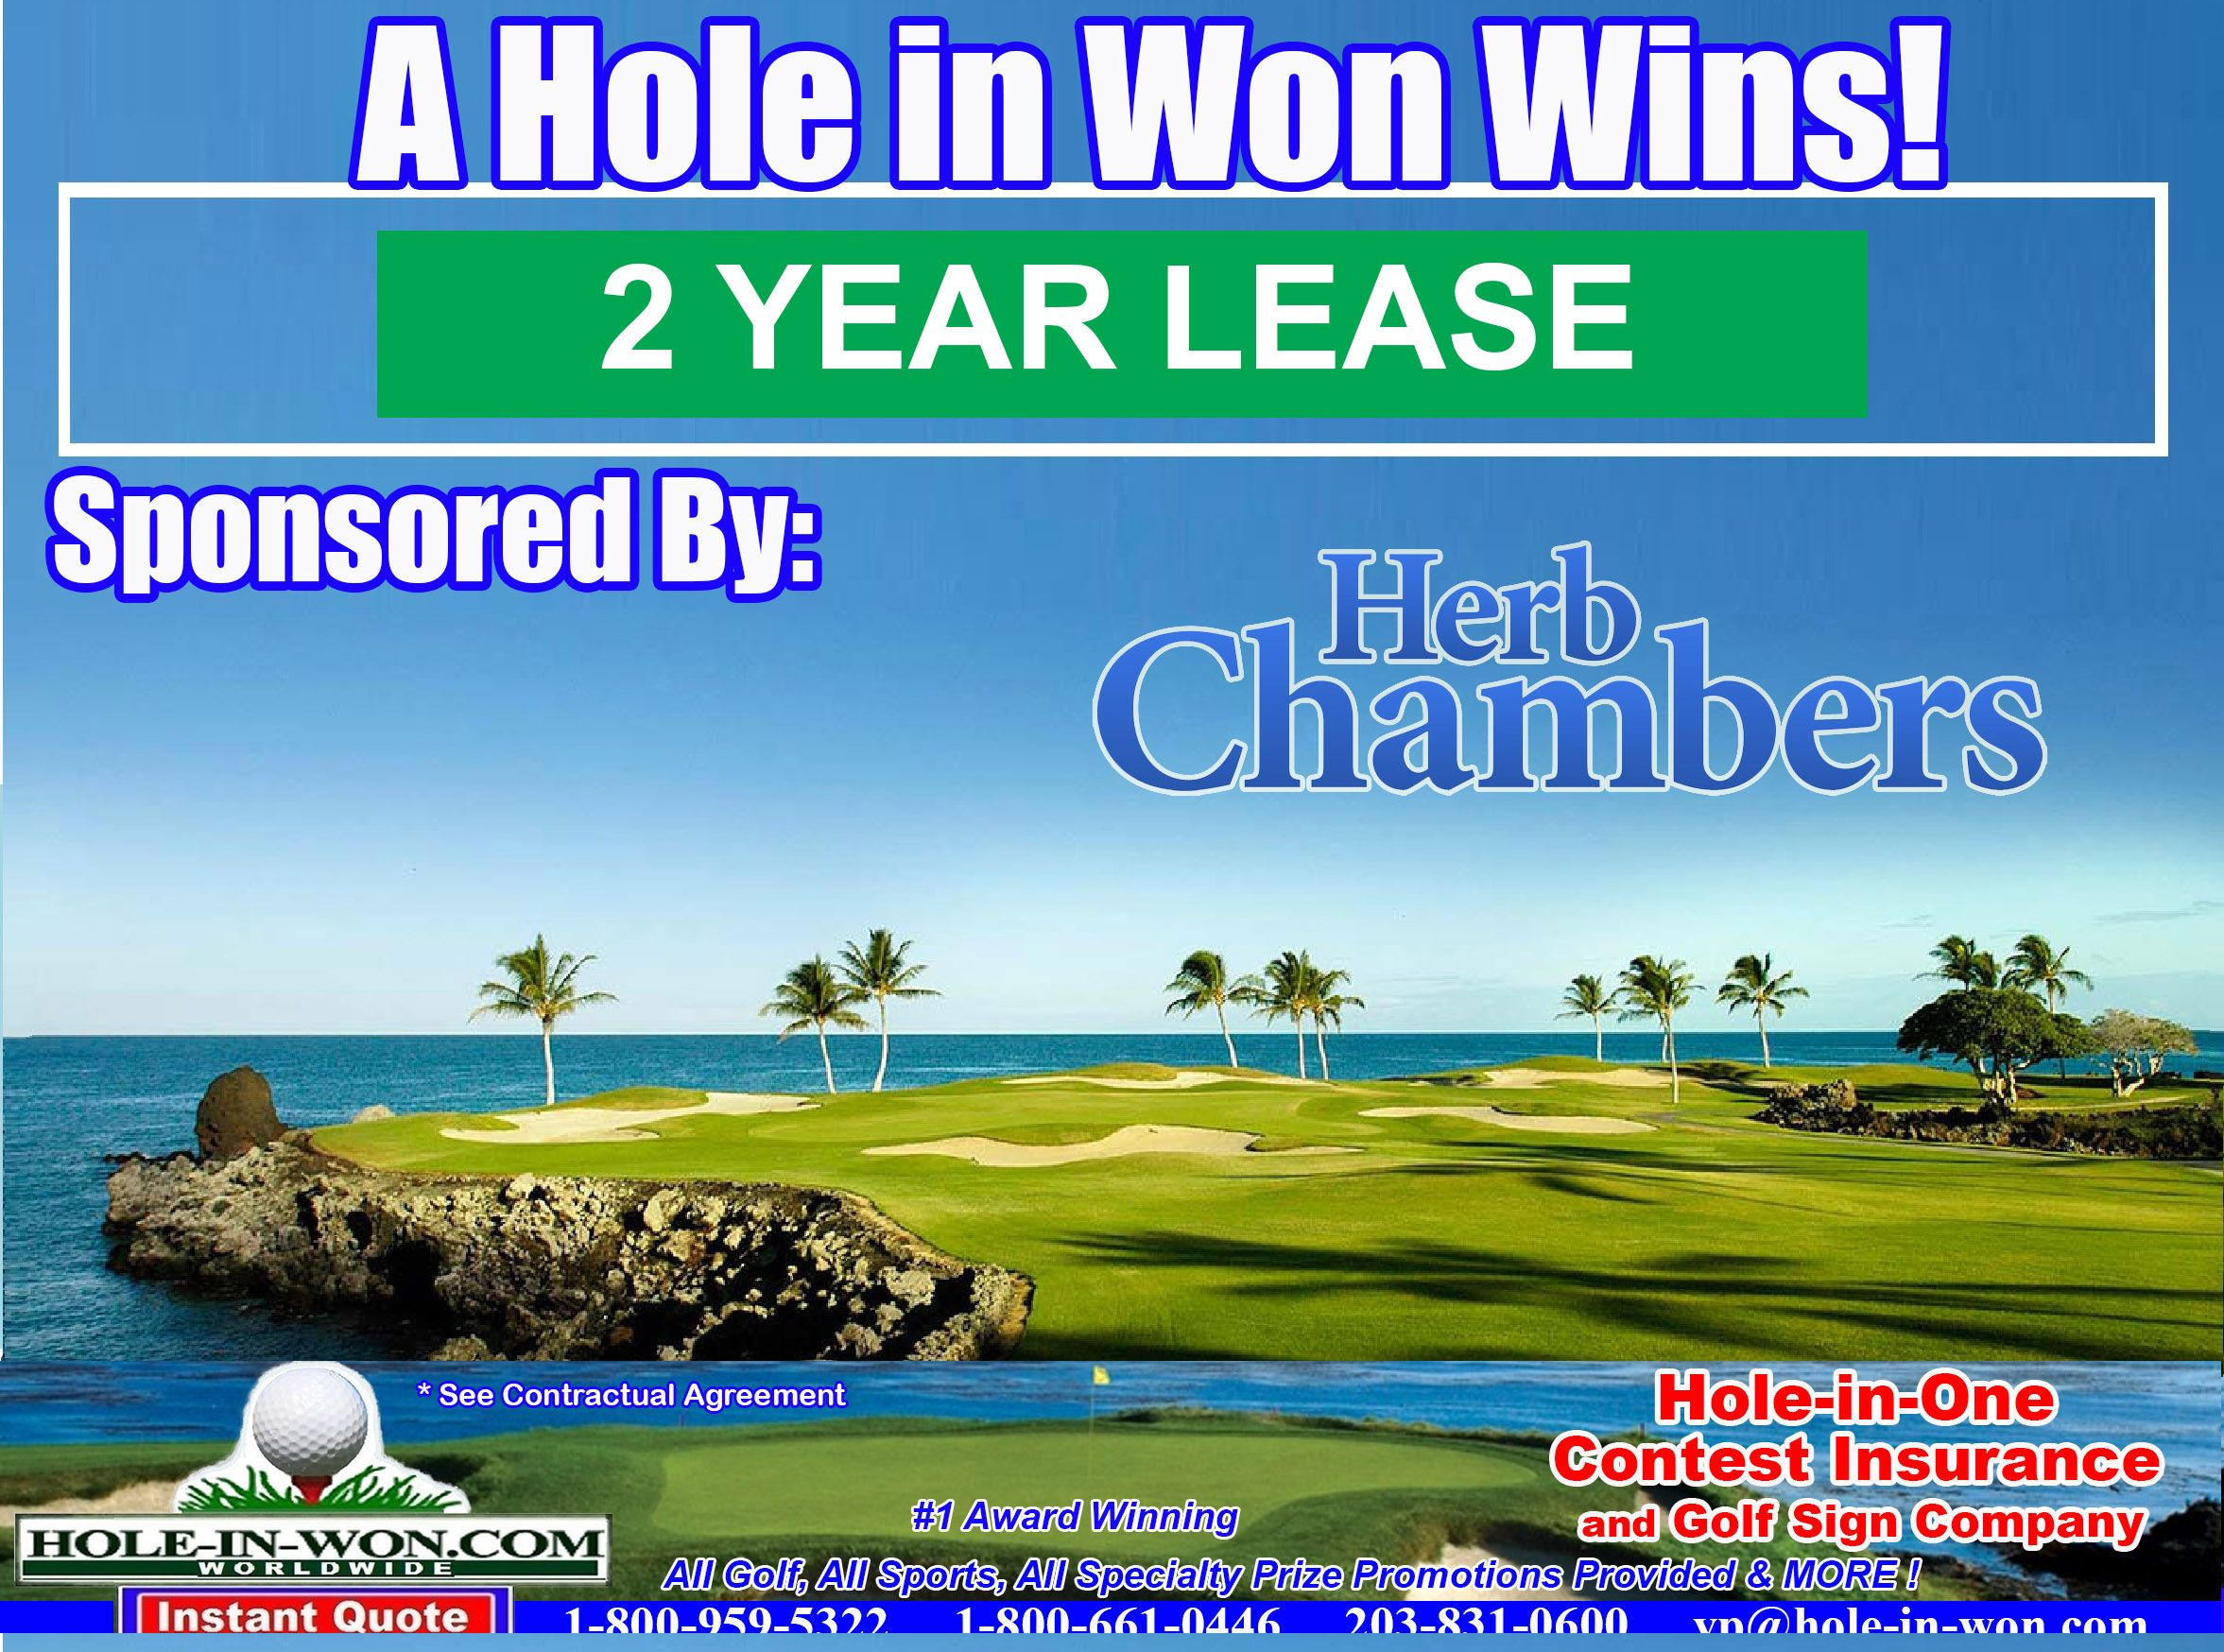 Herb Chambers Automotive Group Hole in One Insurance Herb Chambers on golf outing signs, funny golf signs, golf shot glasses, golf cart signs, golf flag, golf themed bar, vintage metal golf signs, golf sponsorship signs, golf tee signs, golf lessons sign, mini golf warning signs, wooden golf signs, golf course signs, custom golf signs, golf tournament signs, golf signs home decor, golf banners, golf driving range, golf score card, golf plaques and signs,